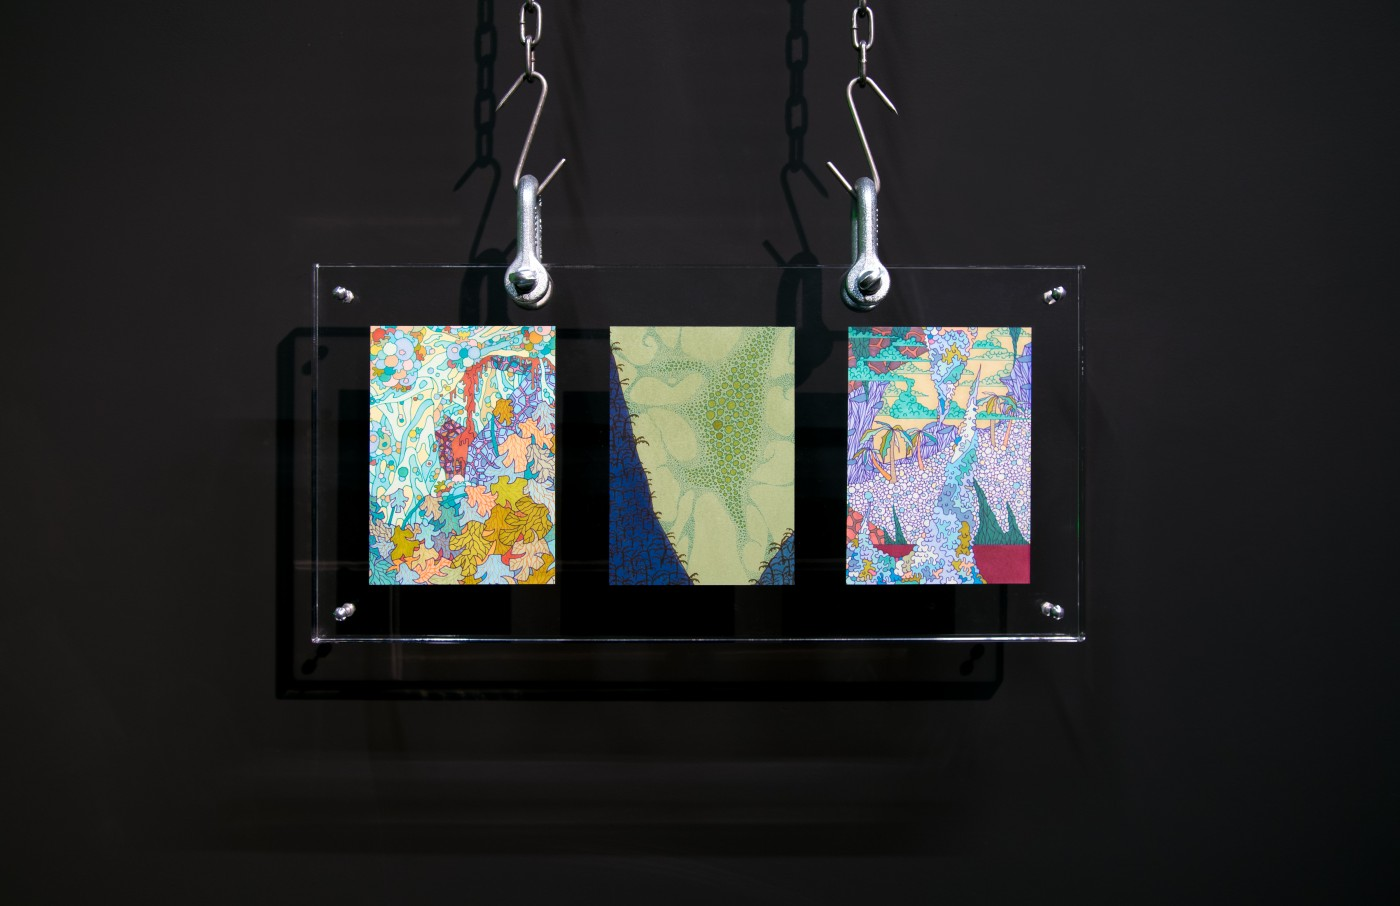 NATURE THEATER OF VIOLENT SUCCESSION  Landscape Triptych</I>, 2015  Pen and marker drawings, acrylic sandwich frame, custom hardware, meathooks, chains 24 x 50 x 2.5 cm / 9.4 x 19.7 x 1 in  MAX HOOPER SCHNEIDER